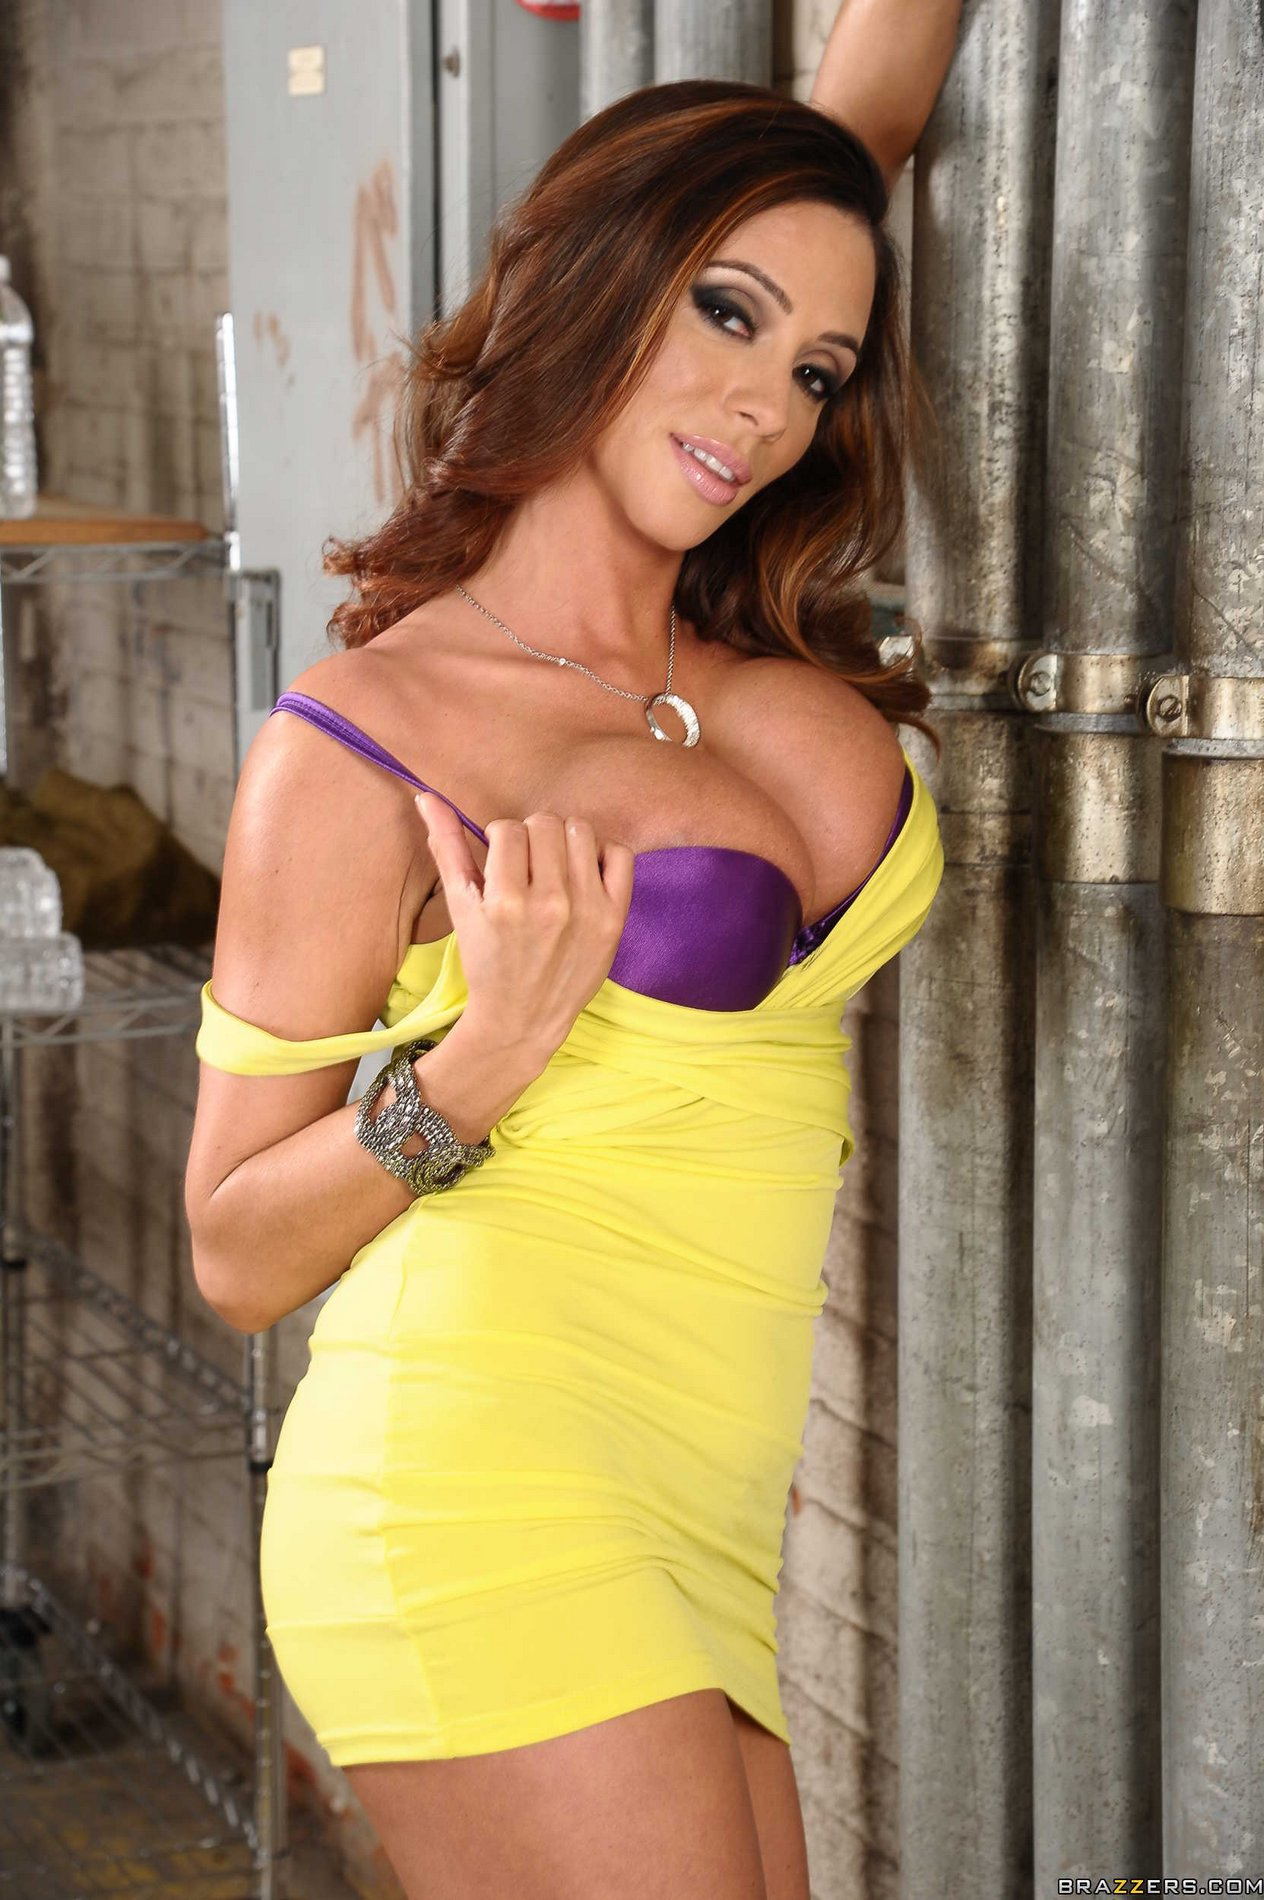 ariella ferrera in sexy yellow dress poses for your pleasure - my